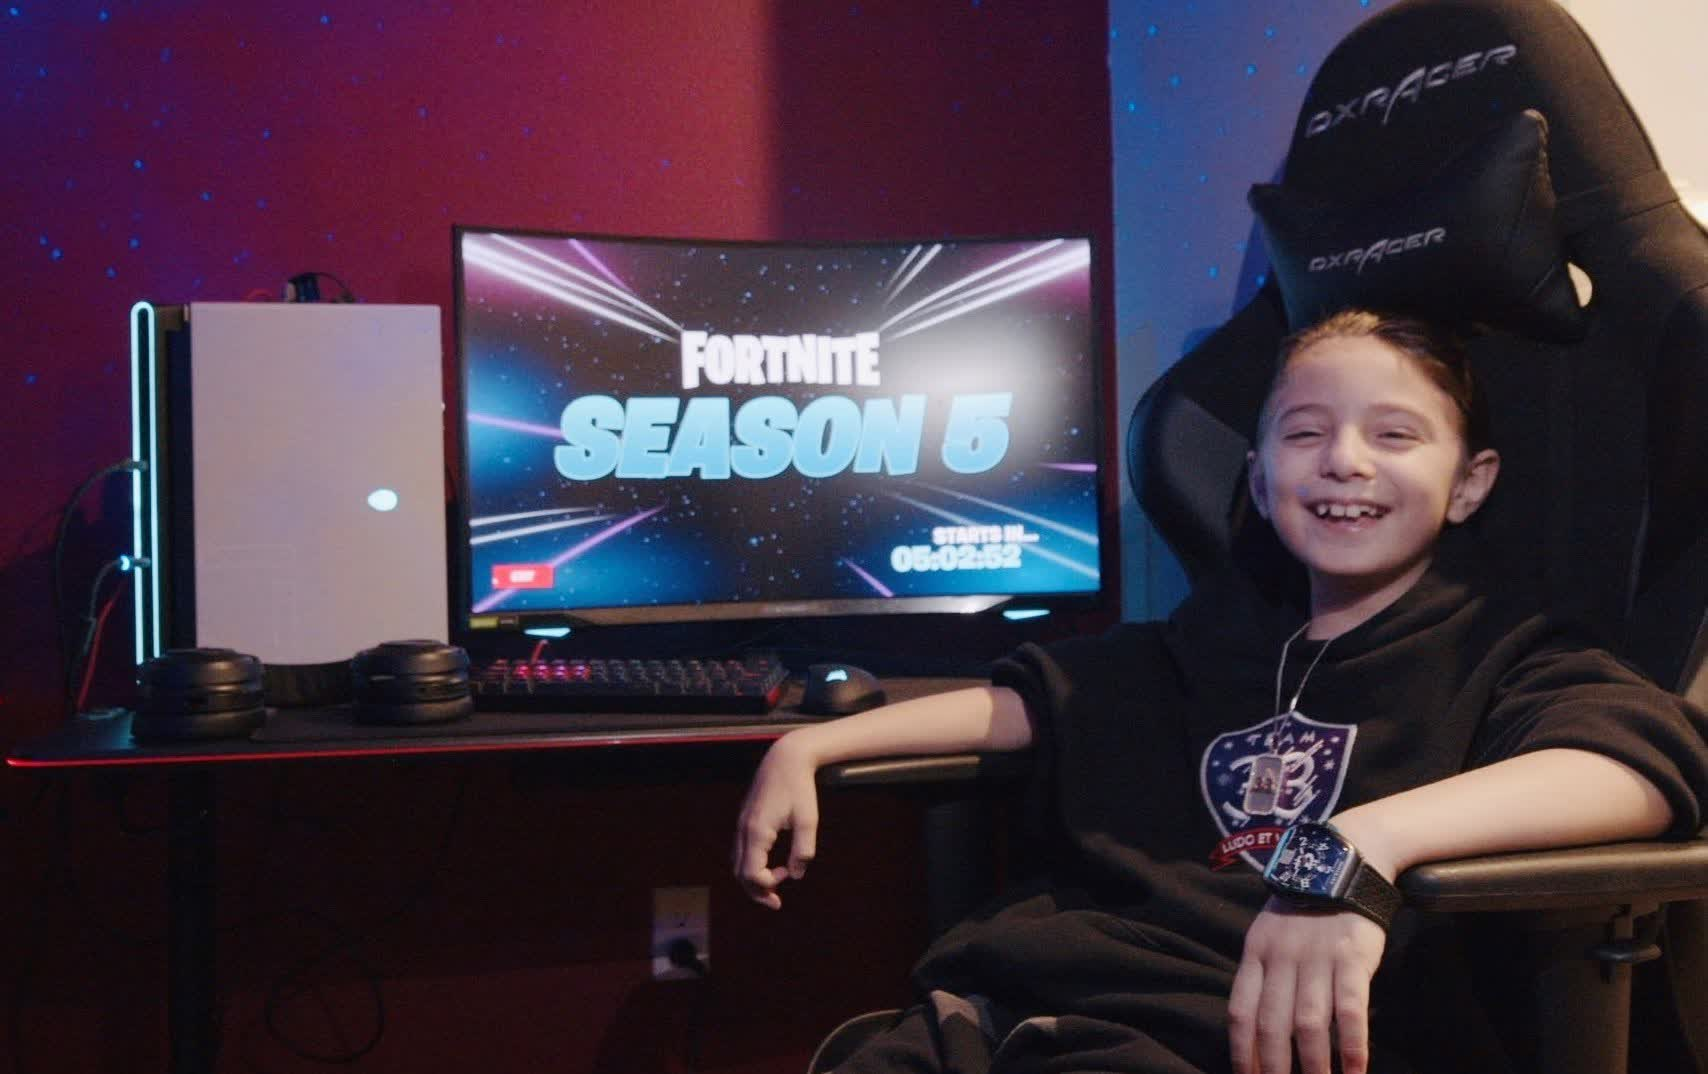 Eight-year-old Fortnite player given $33,000 and $5,000 PC for turning pro